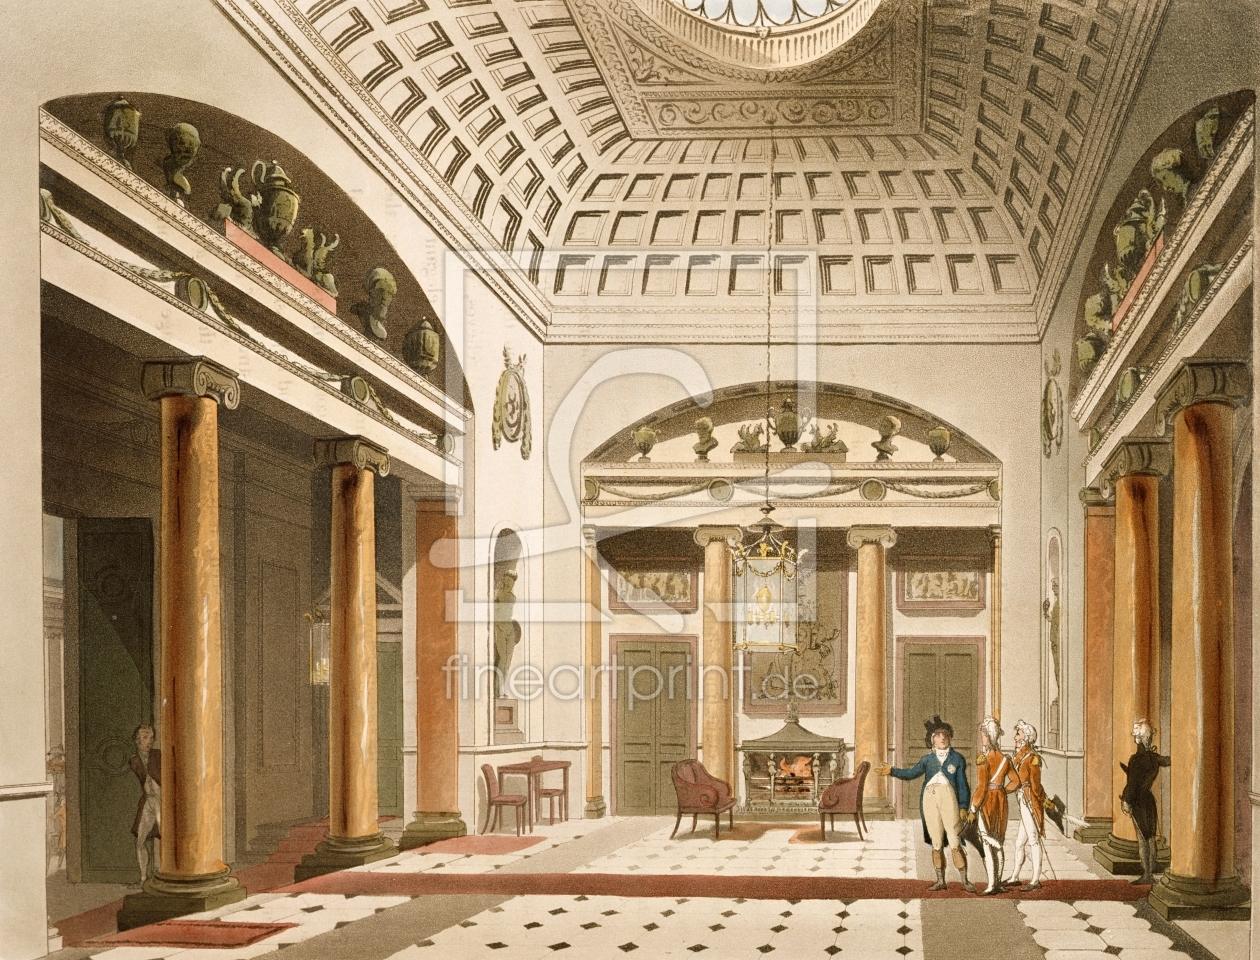 Bild-Nr.: 31002631 The Hall, Carlton House, from Ackermann's 'Microcosm of London' erstellt von Rowlandson, Thomas